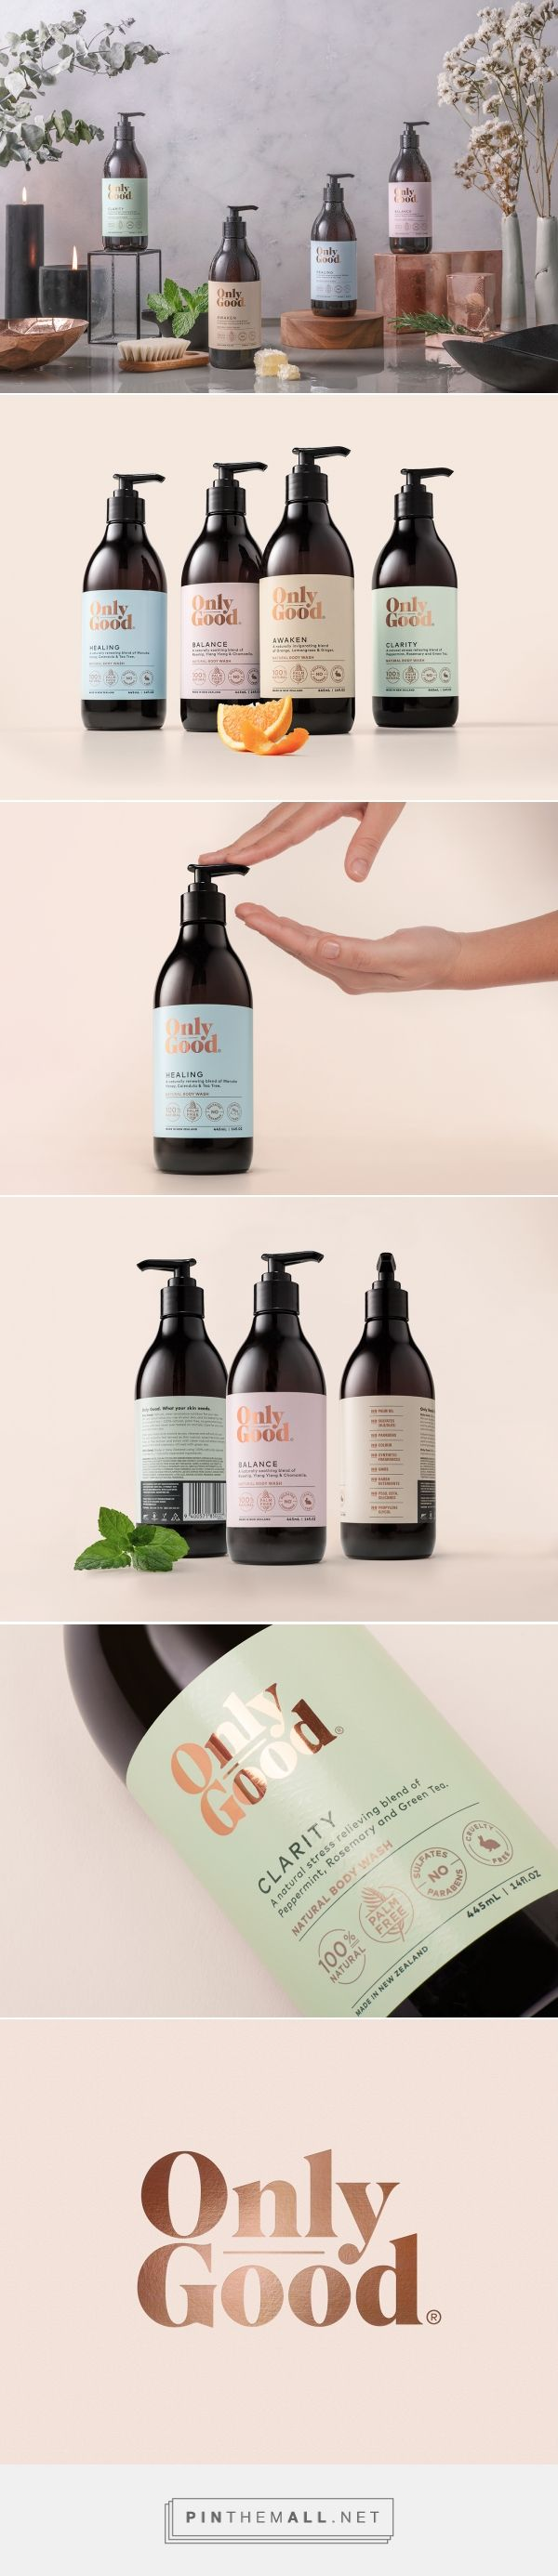 Only Good /  natural body wash by Milk studio